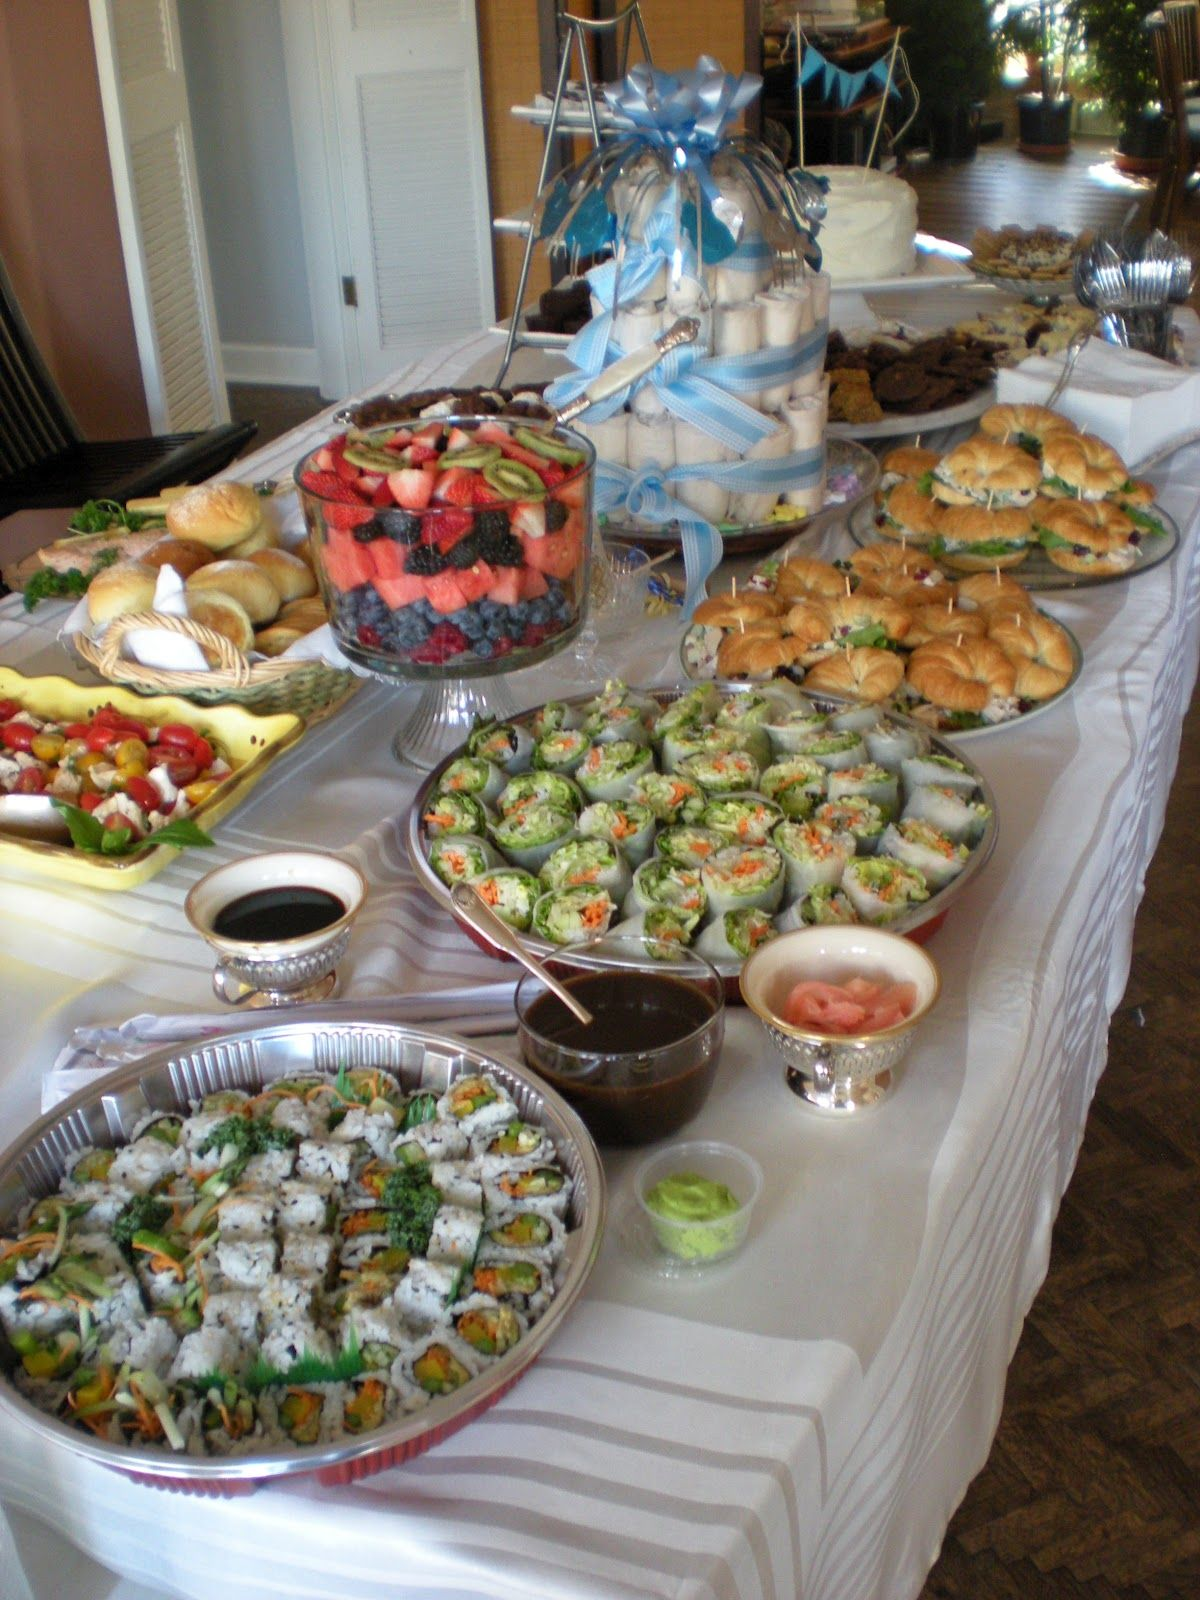 Baby Shower Food | As One Of The Shower Hosts, I Supplied Some Of The